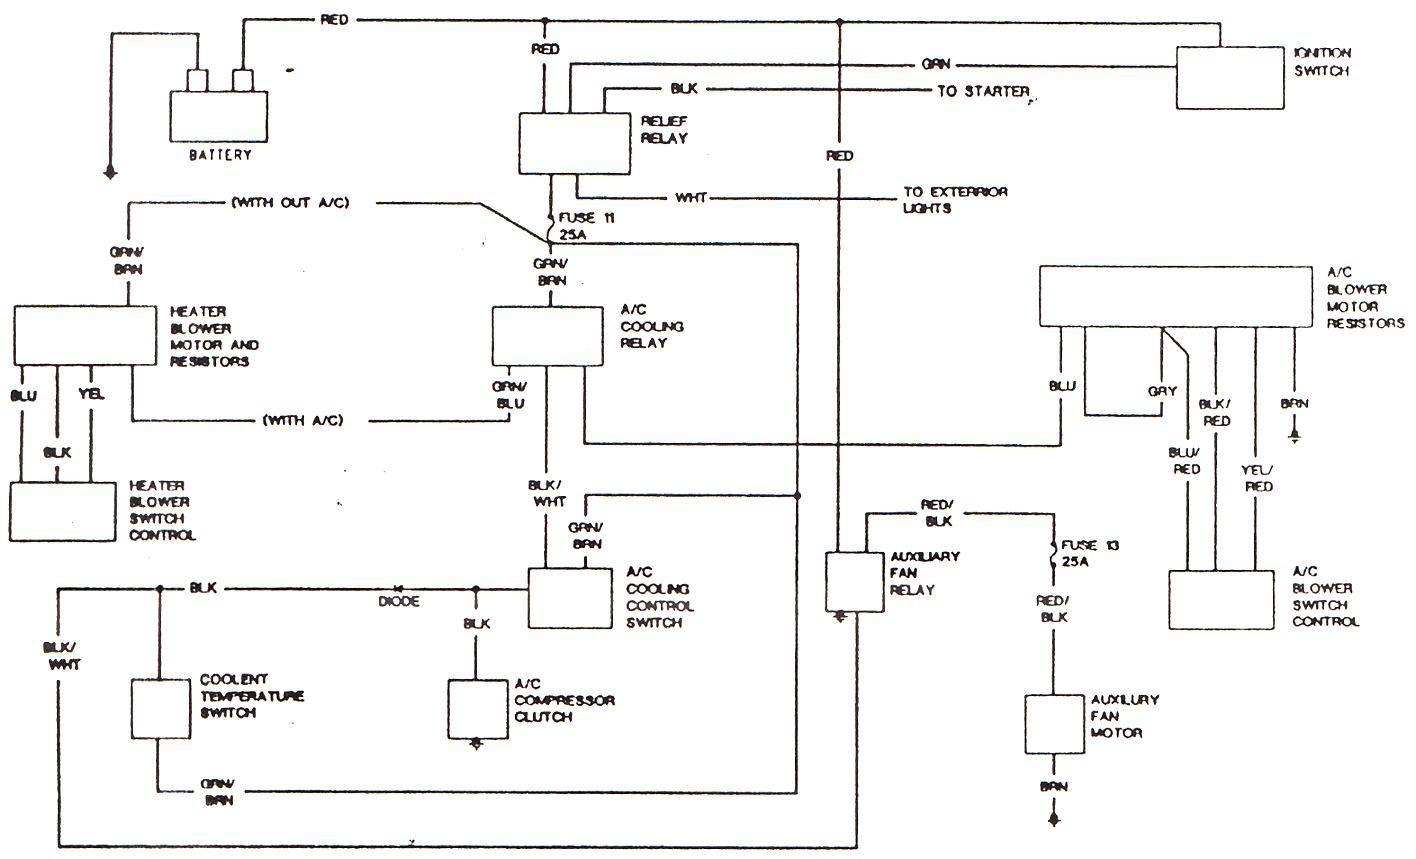 Ford 6640 Ac Wiring Diagram Electrical Diagrams Blower Motor 7840 Trusted 1994 Ranger Fuse